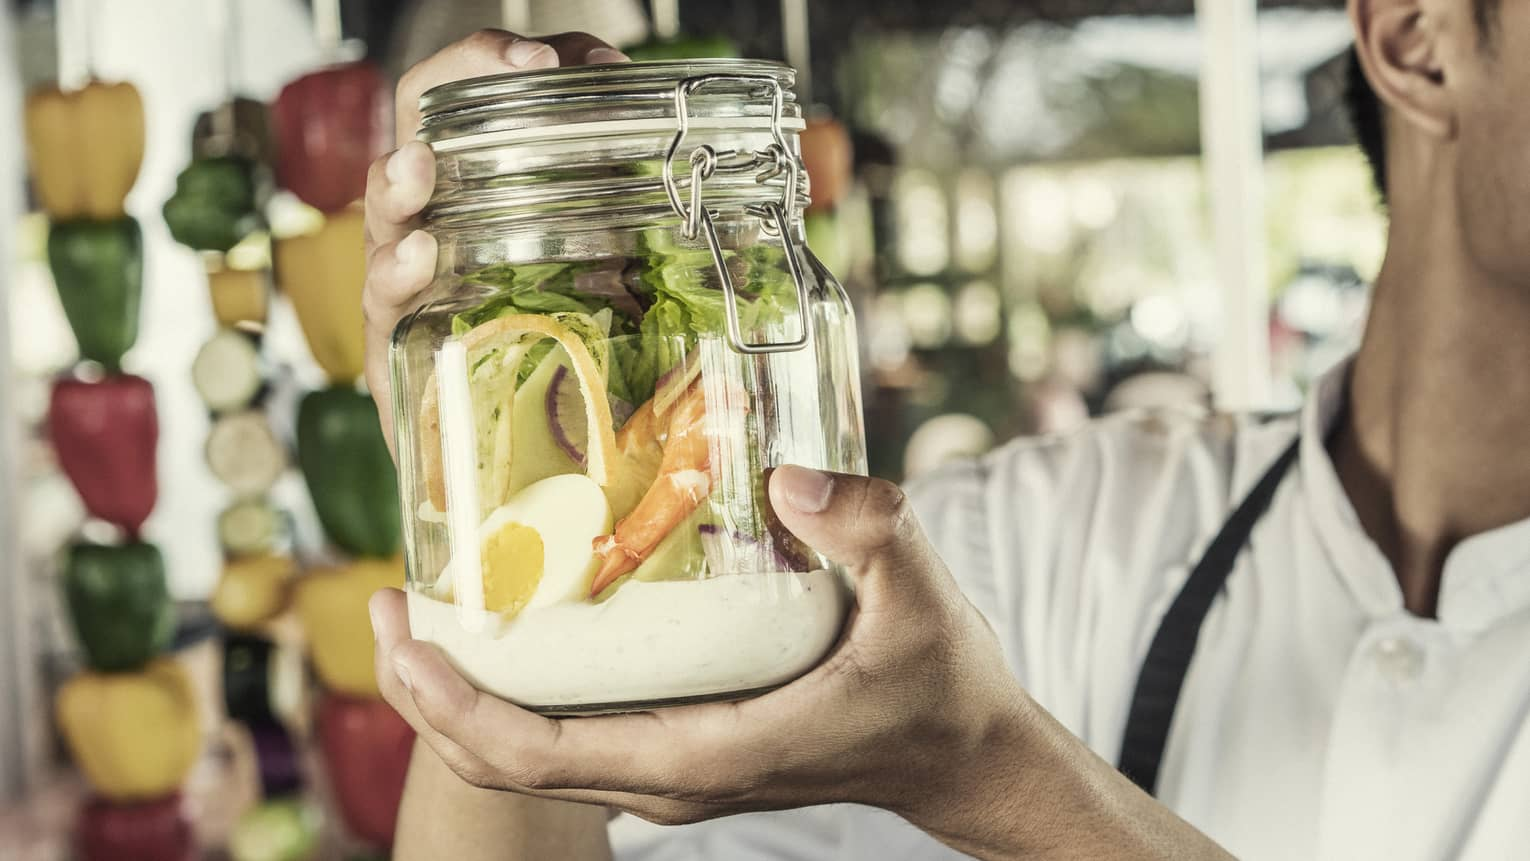 A chef shakes a caesar salad in a glass jar with some dressing